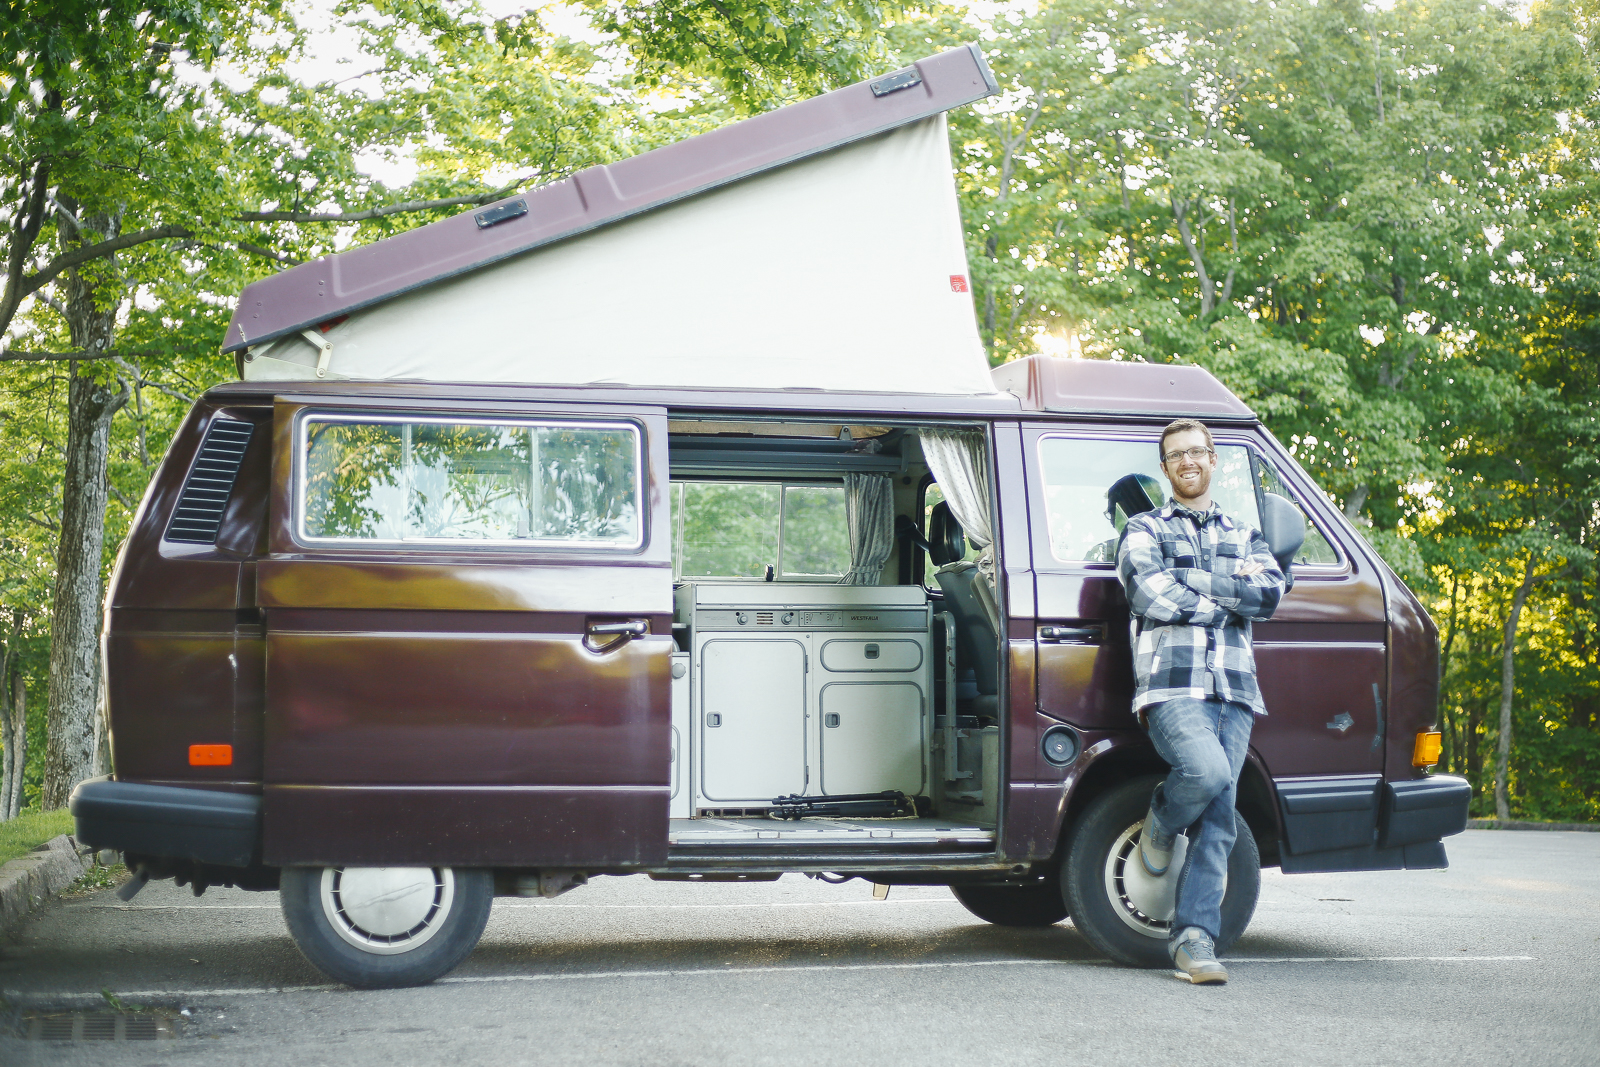 Not long after the seed was planted for Searching For Sero, the ultimate adventure-mobile was purchased. A 1991 VW Westfalia Camper. Photo Tracy Guenard/Searching For Sero